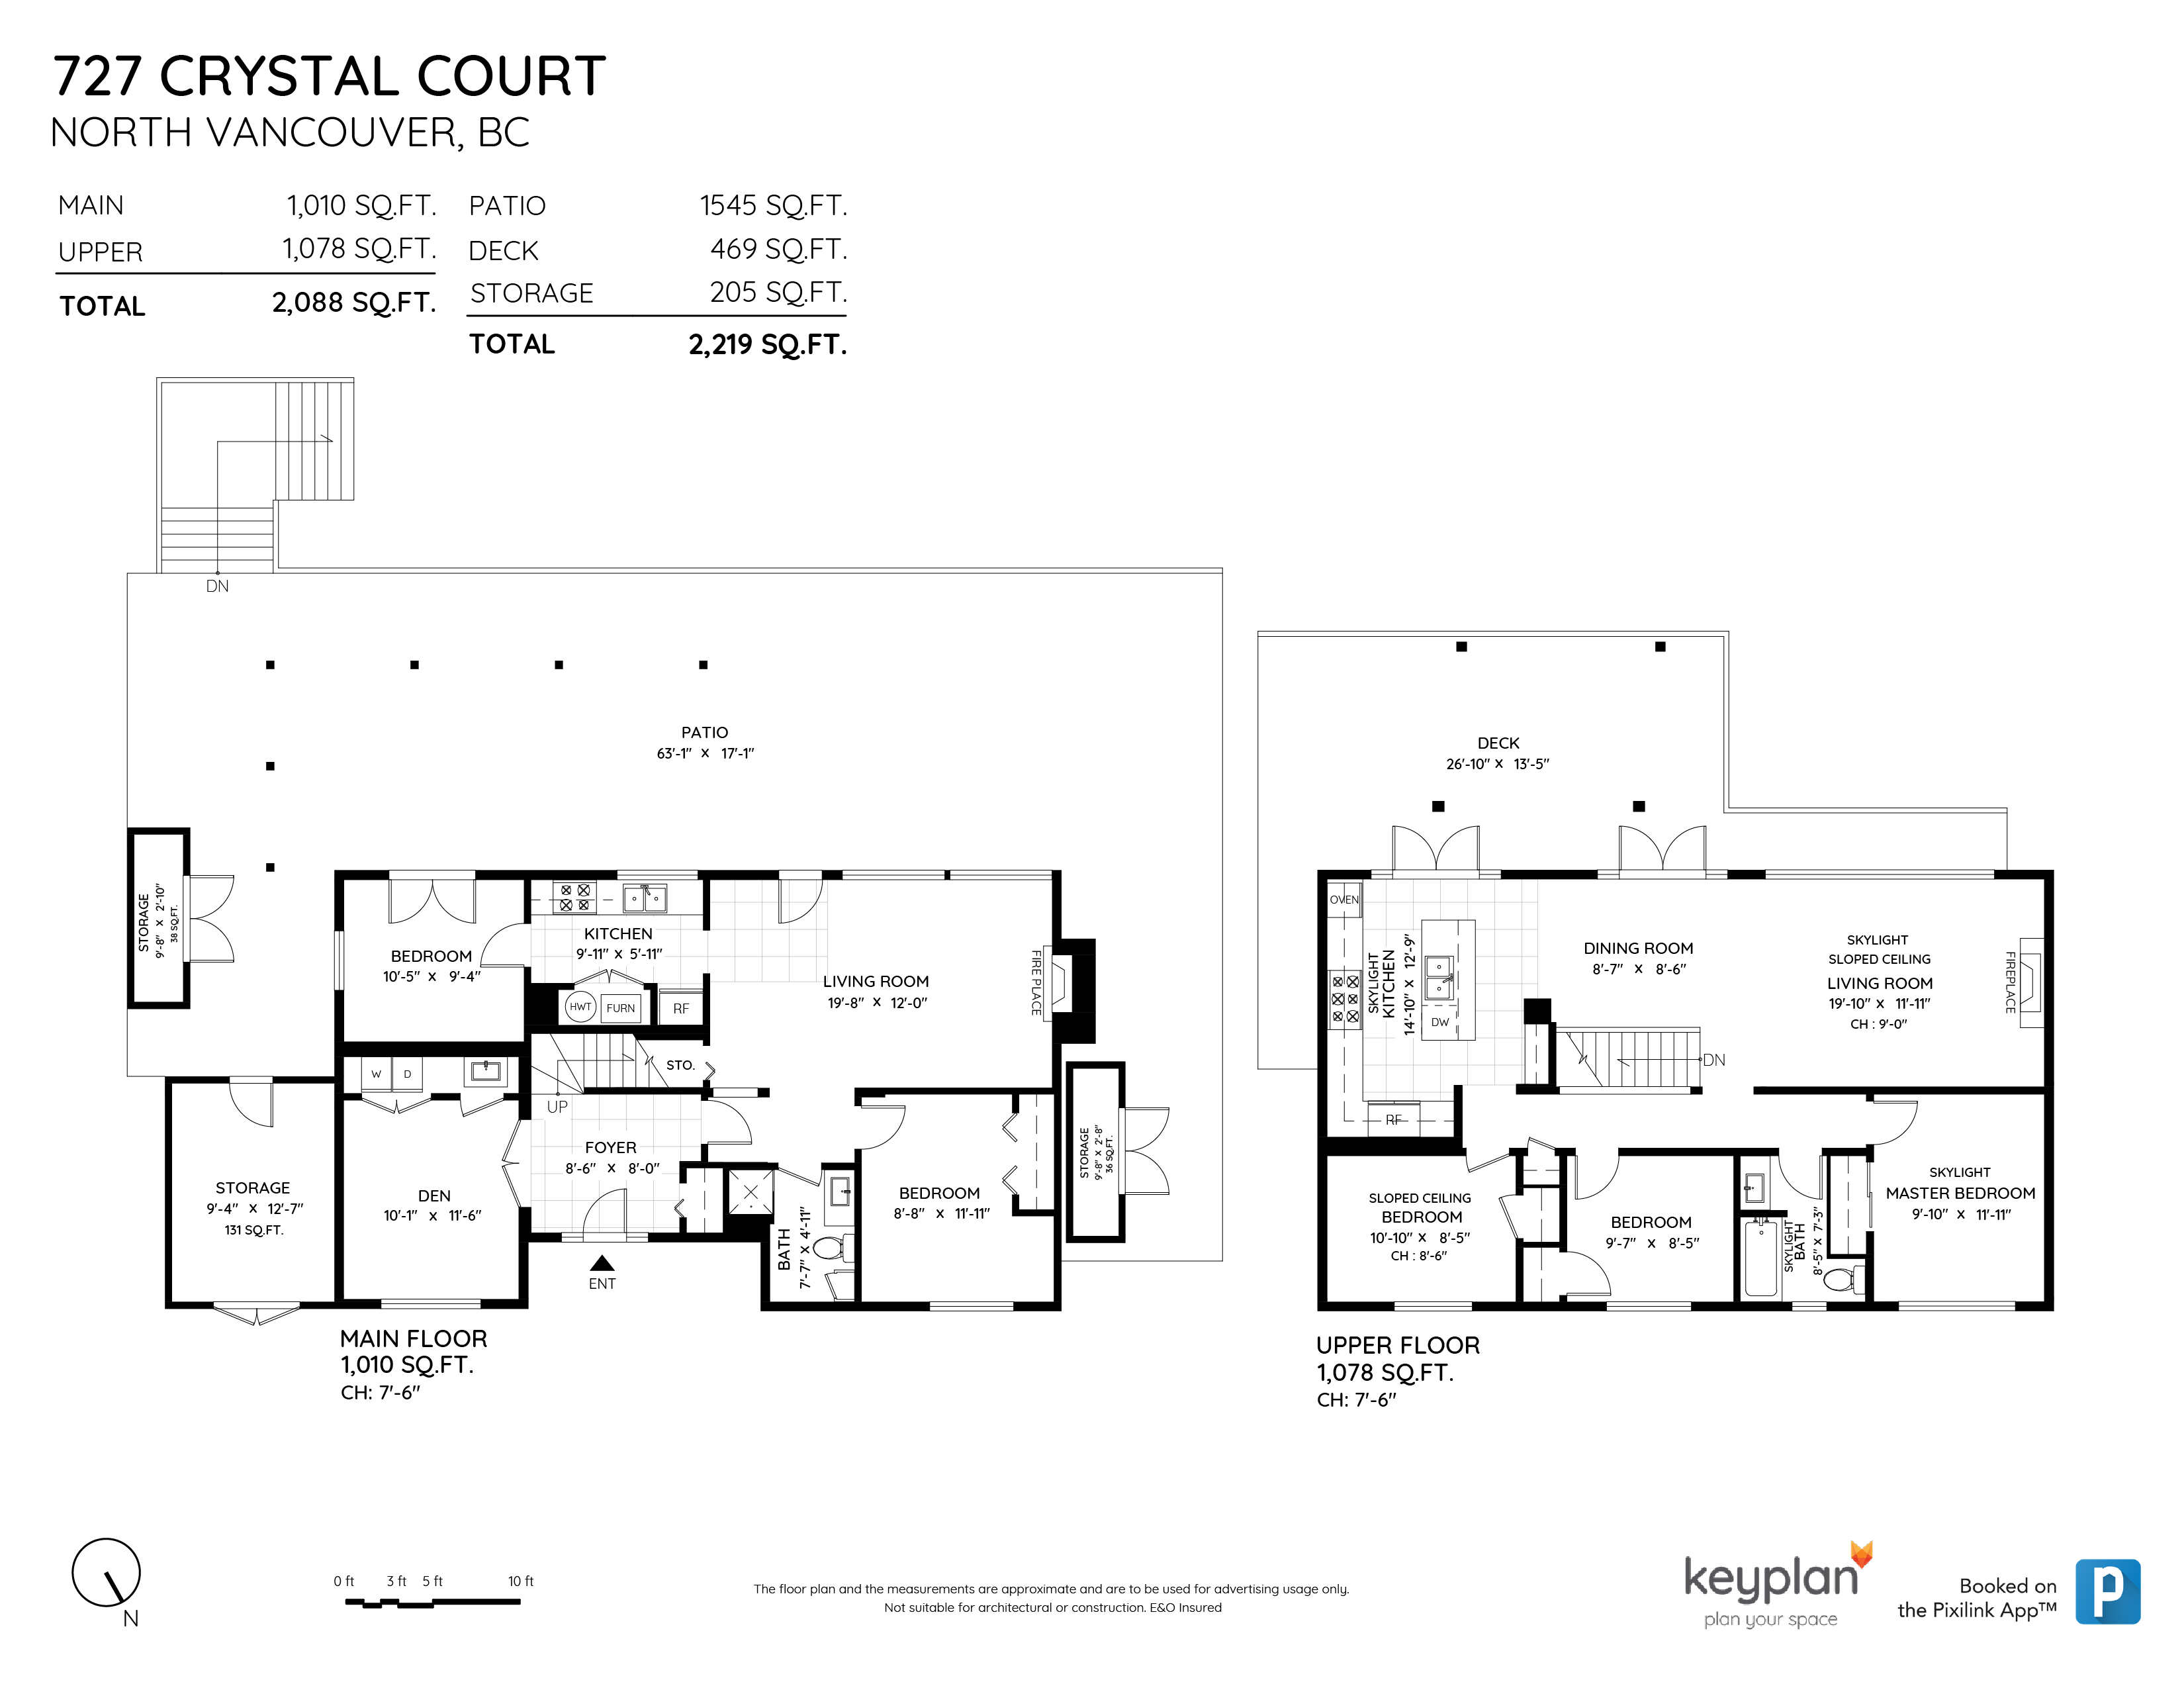 727 CRYSTAL COURT, North Vancouver, BC Floor Plan